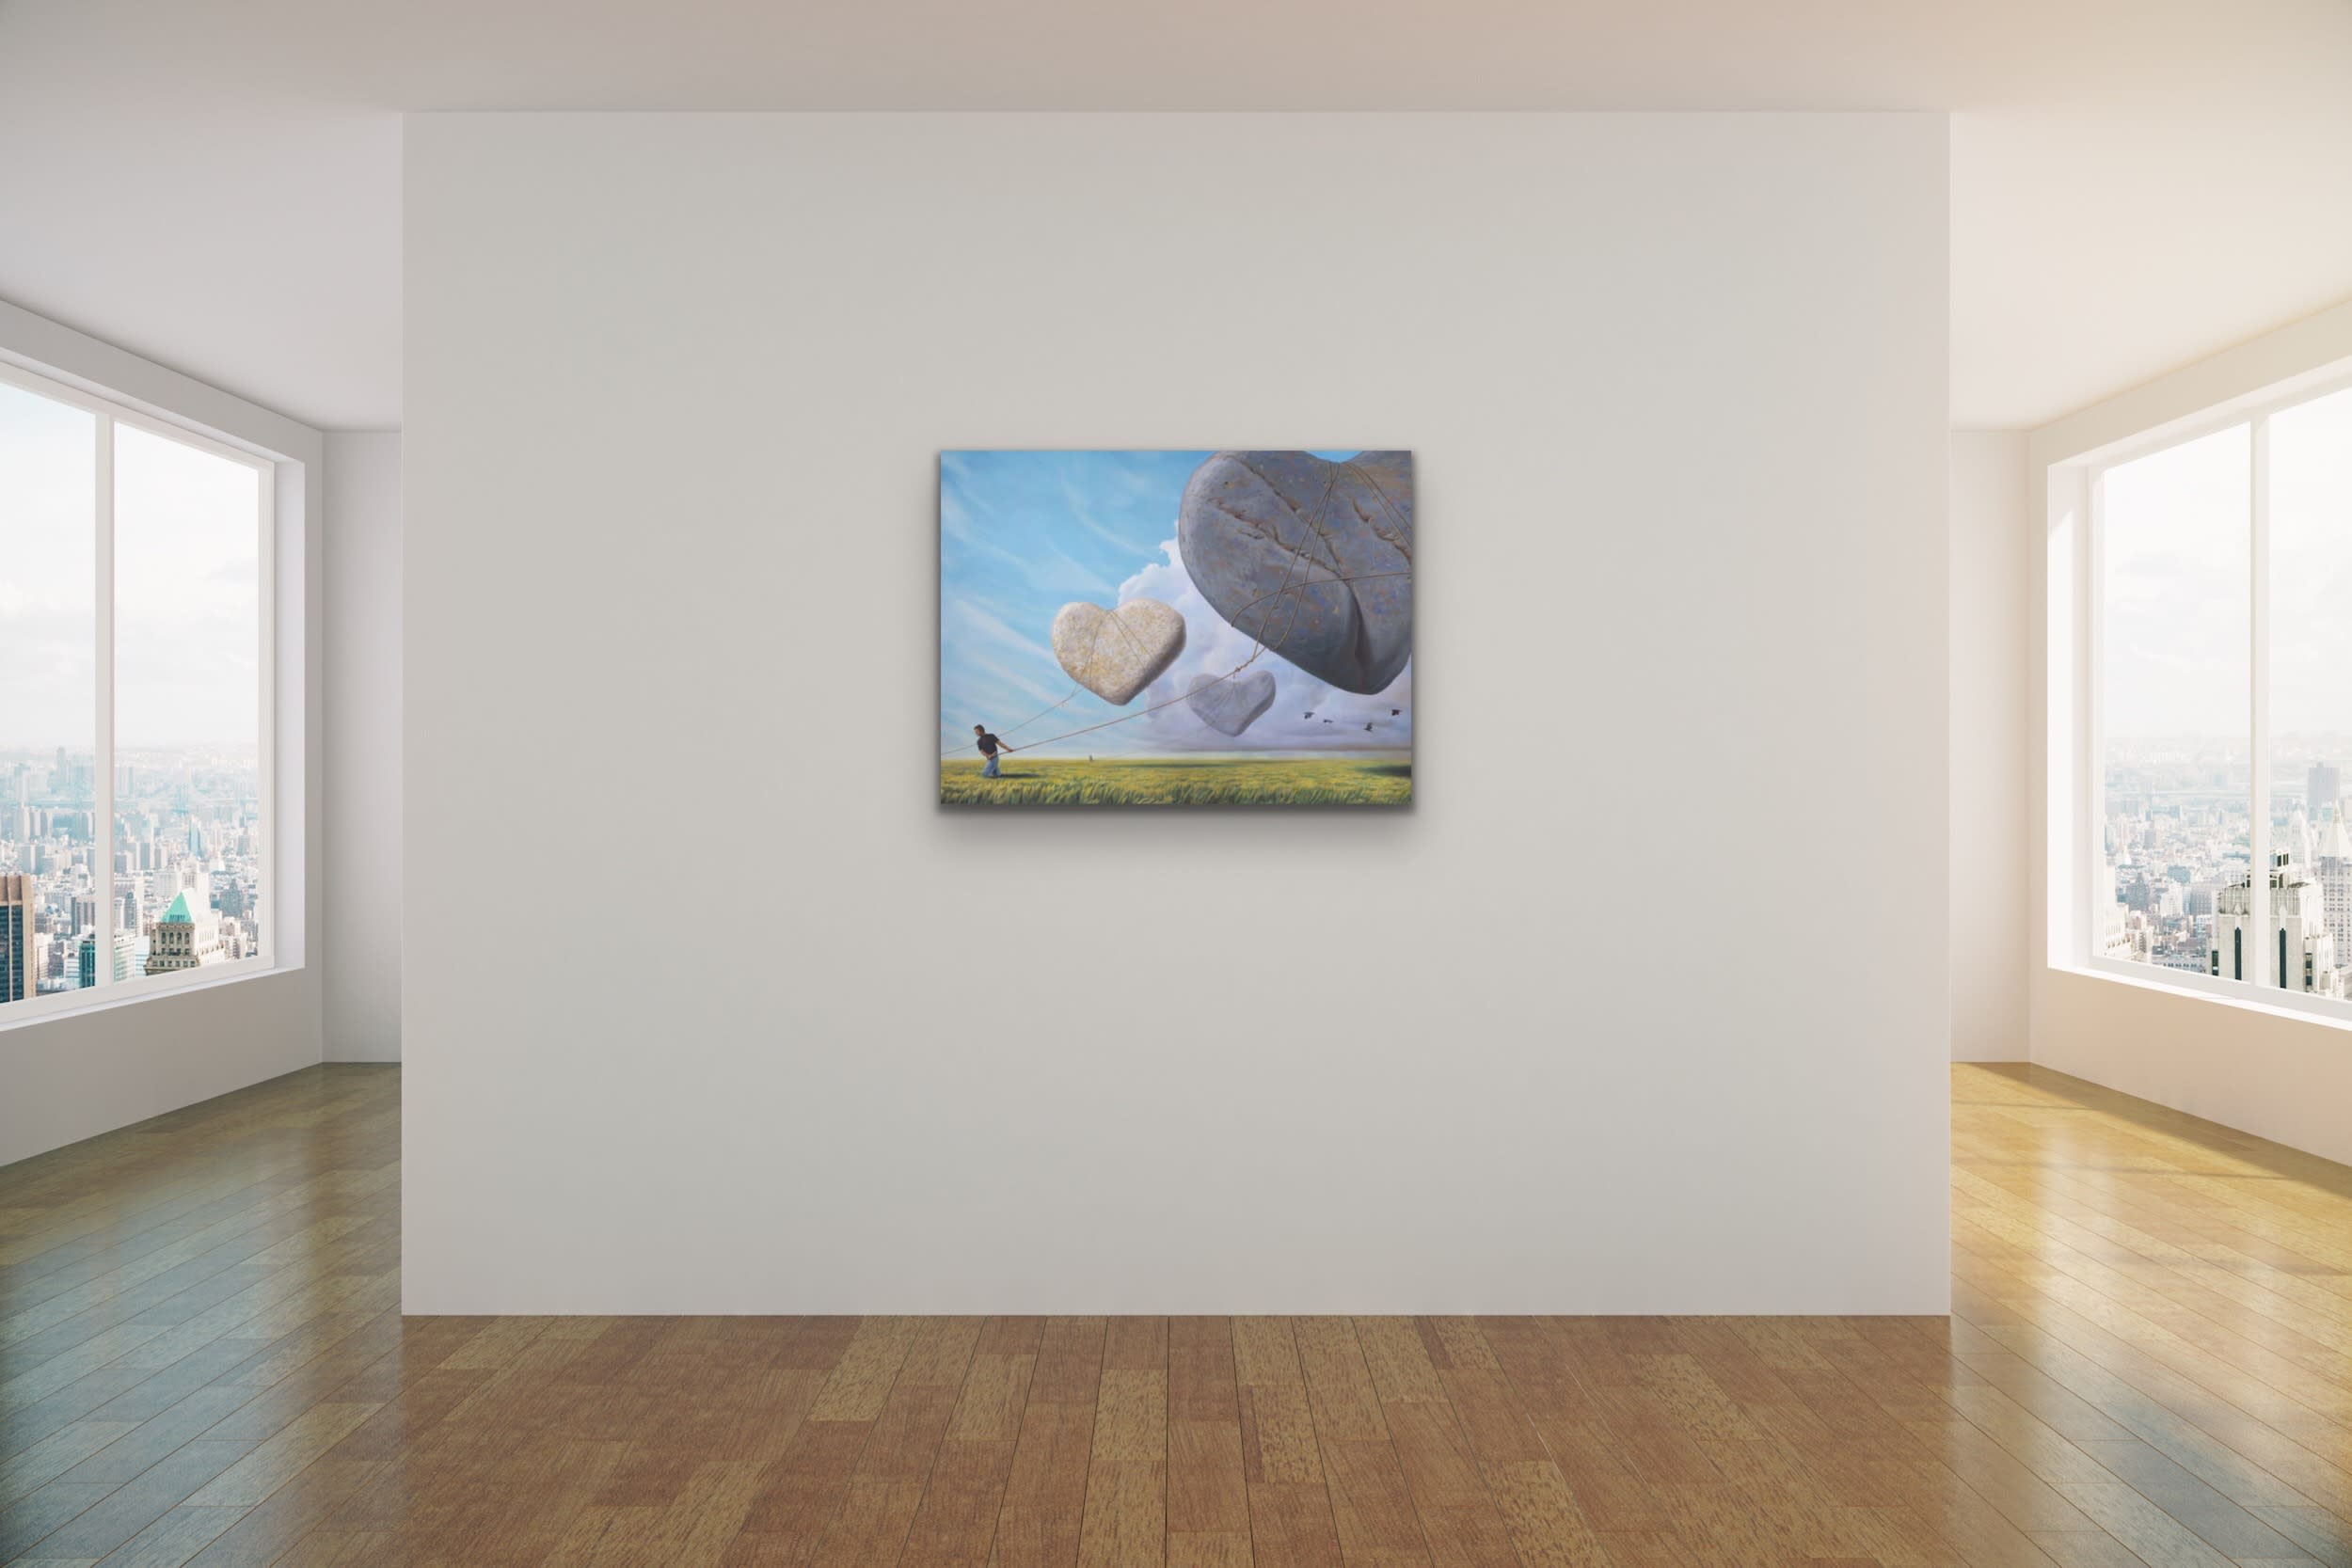 <div class='title'>           Paul Bond Magical Realism Poetry Serene Landscape Animals Nature Surreal Metaphorical Whimsical Fantasy Evo Art Maui Lahaina Front Street Art Gallery 23         </div>